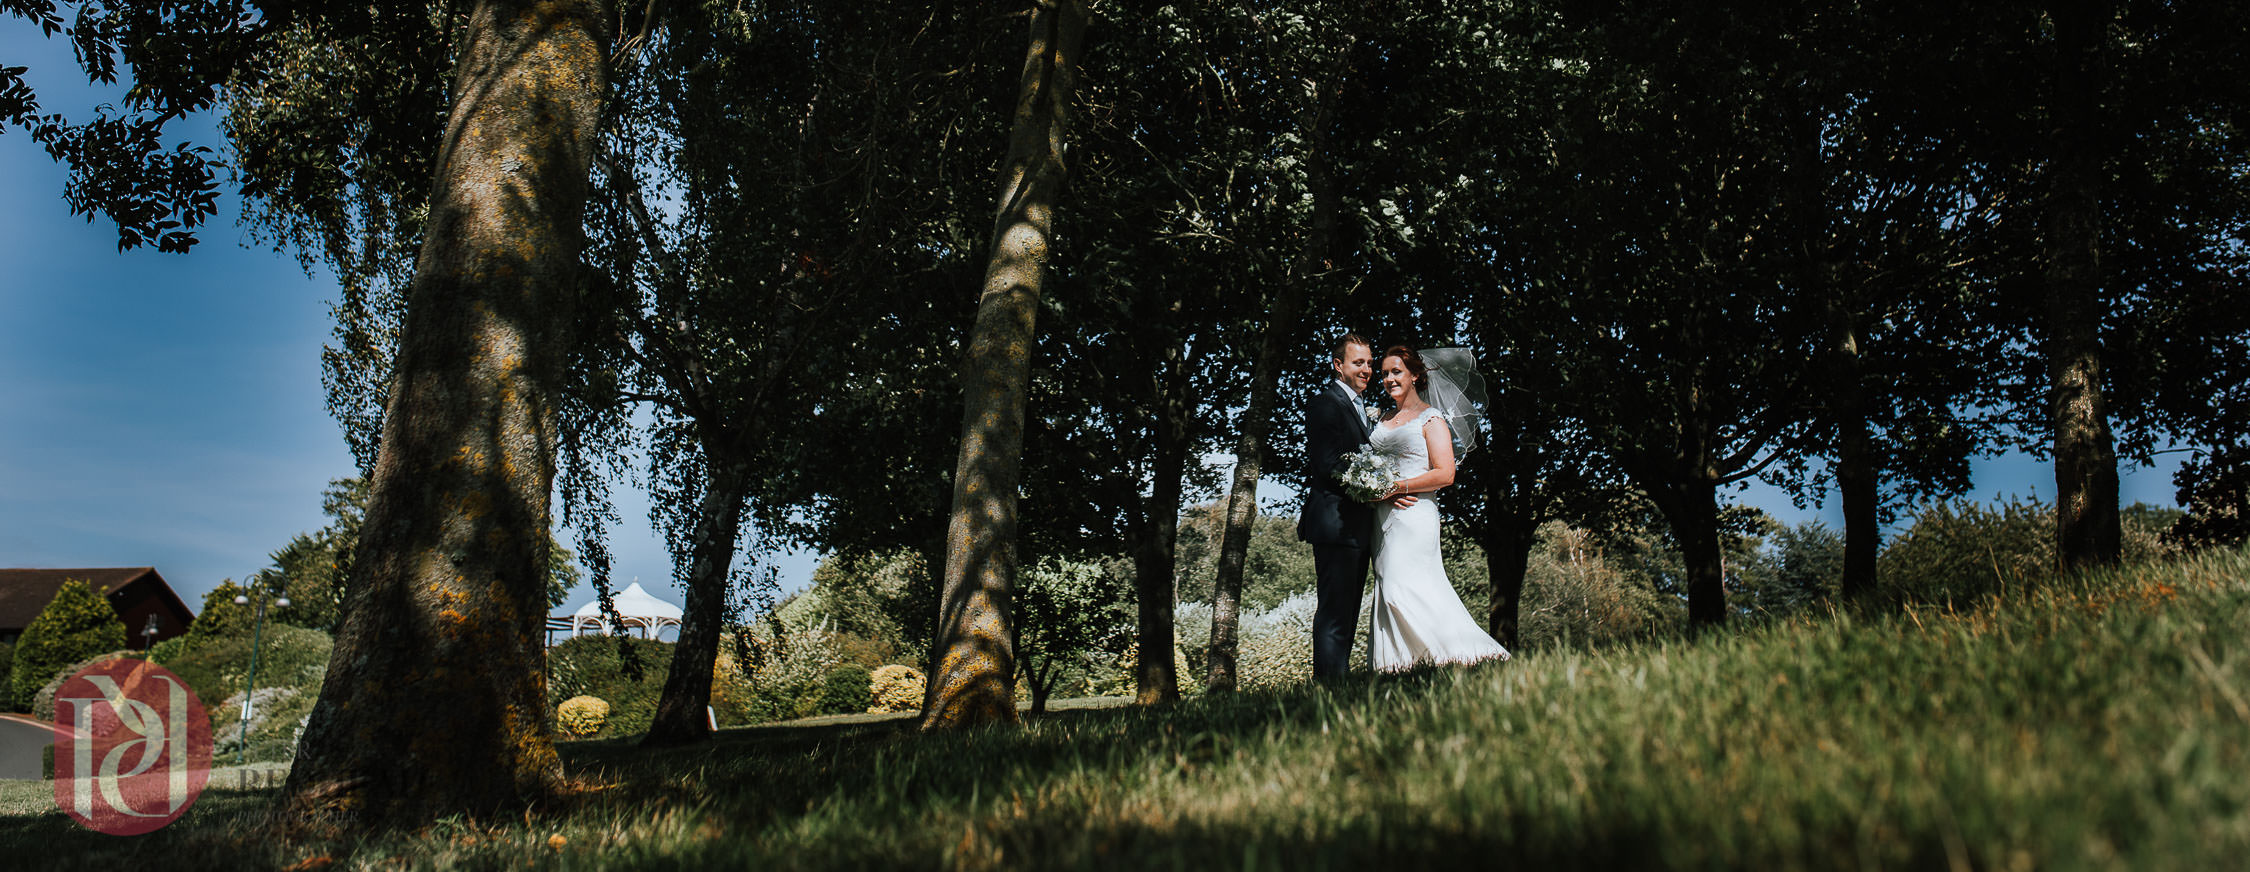 Summer wedding at Barnsdale Hall | Tara & George